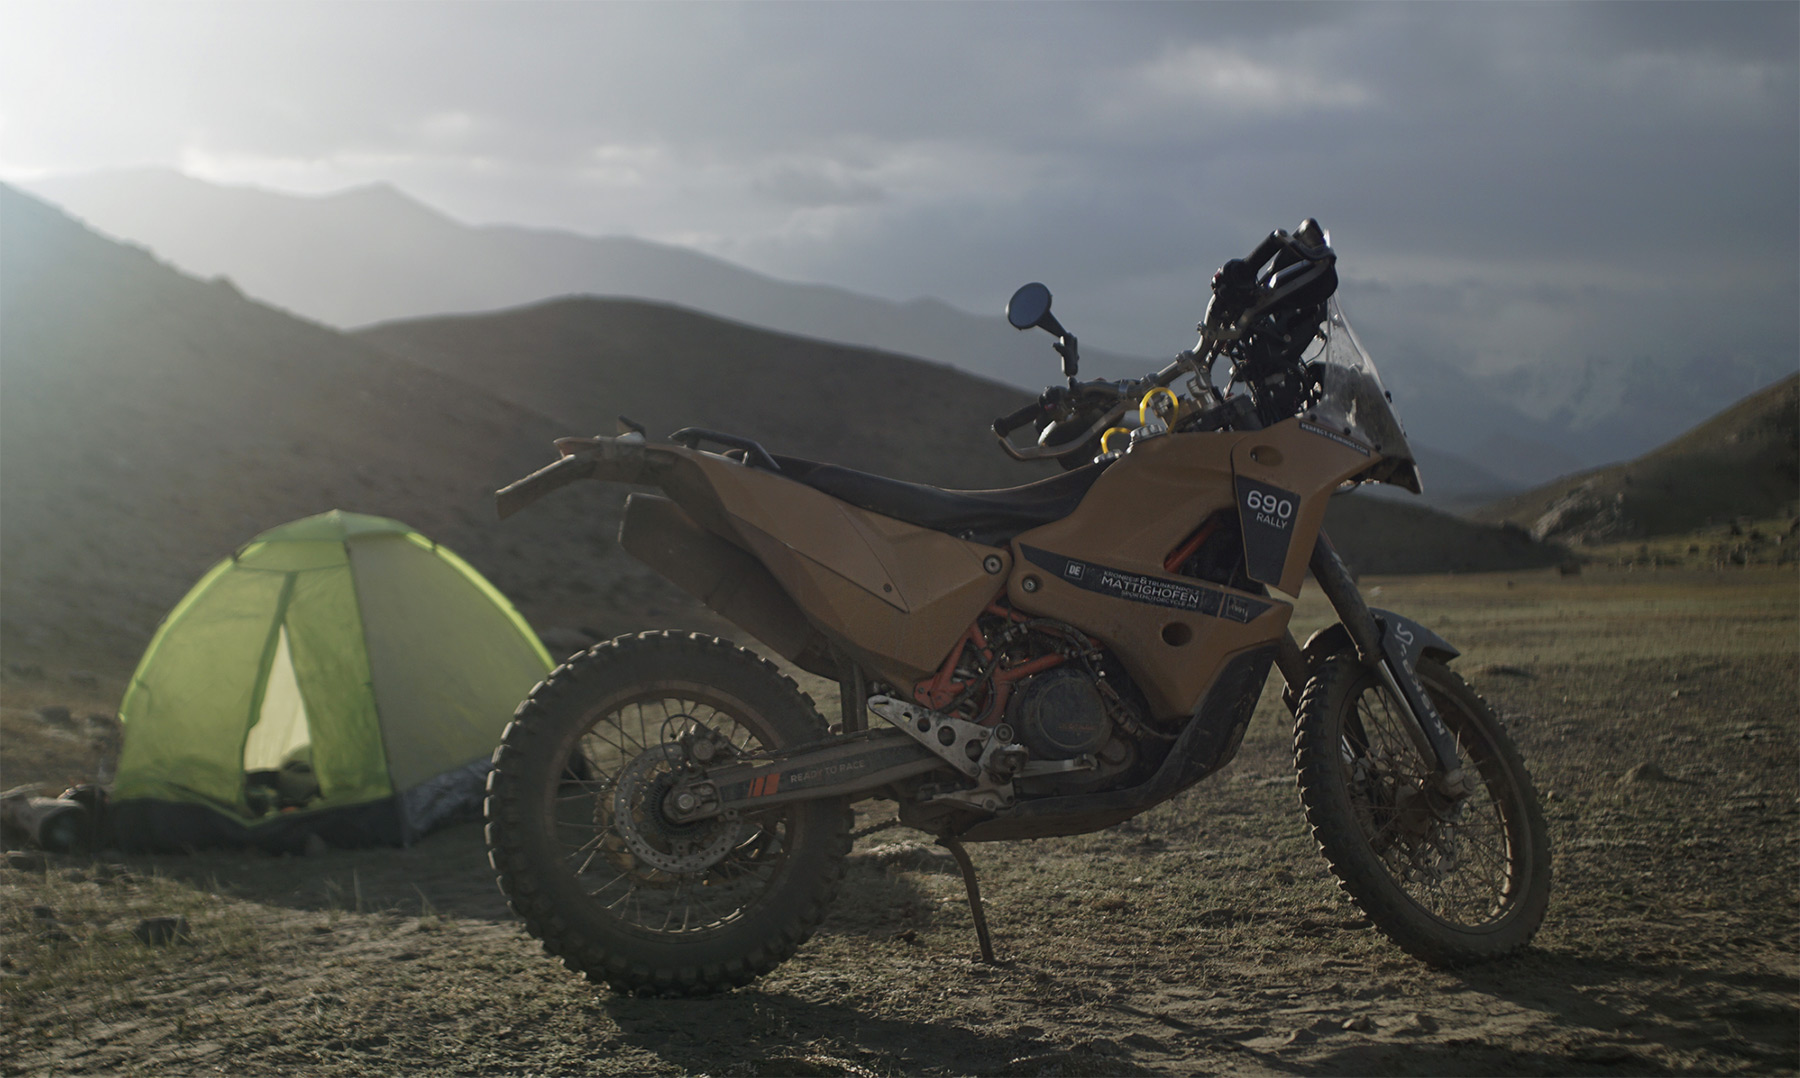 ktm-690-rally-adventure-moto